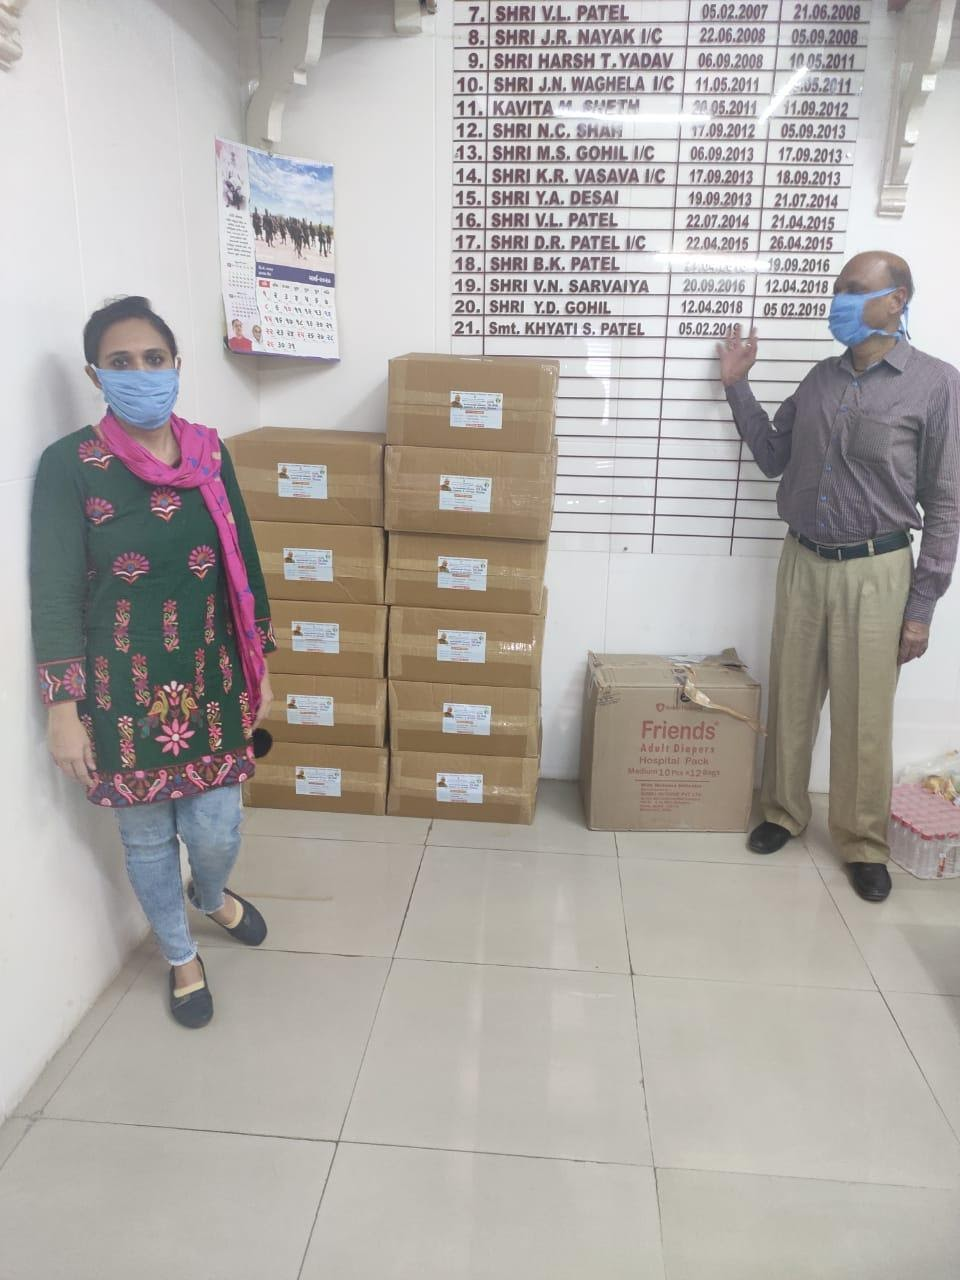 Hand sanitisers, Glovers, Mask etc. delivered at district administration office in Vadodara